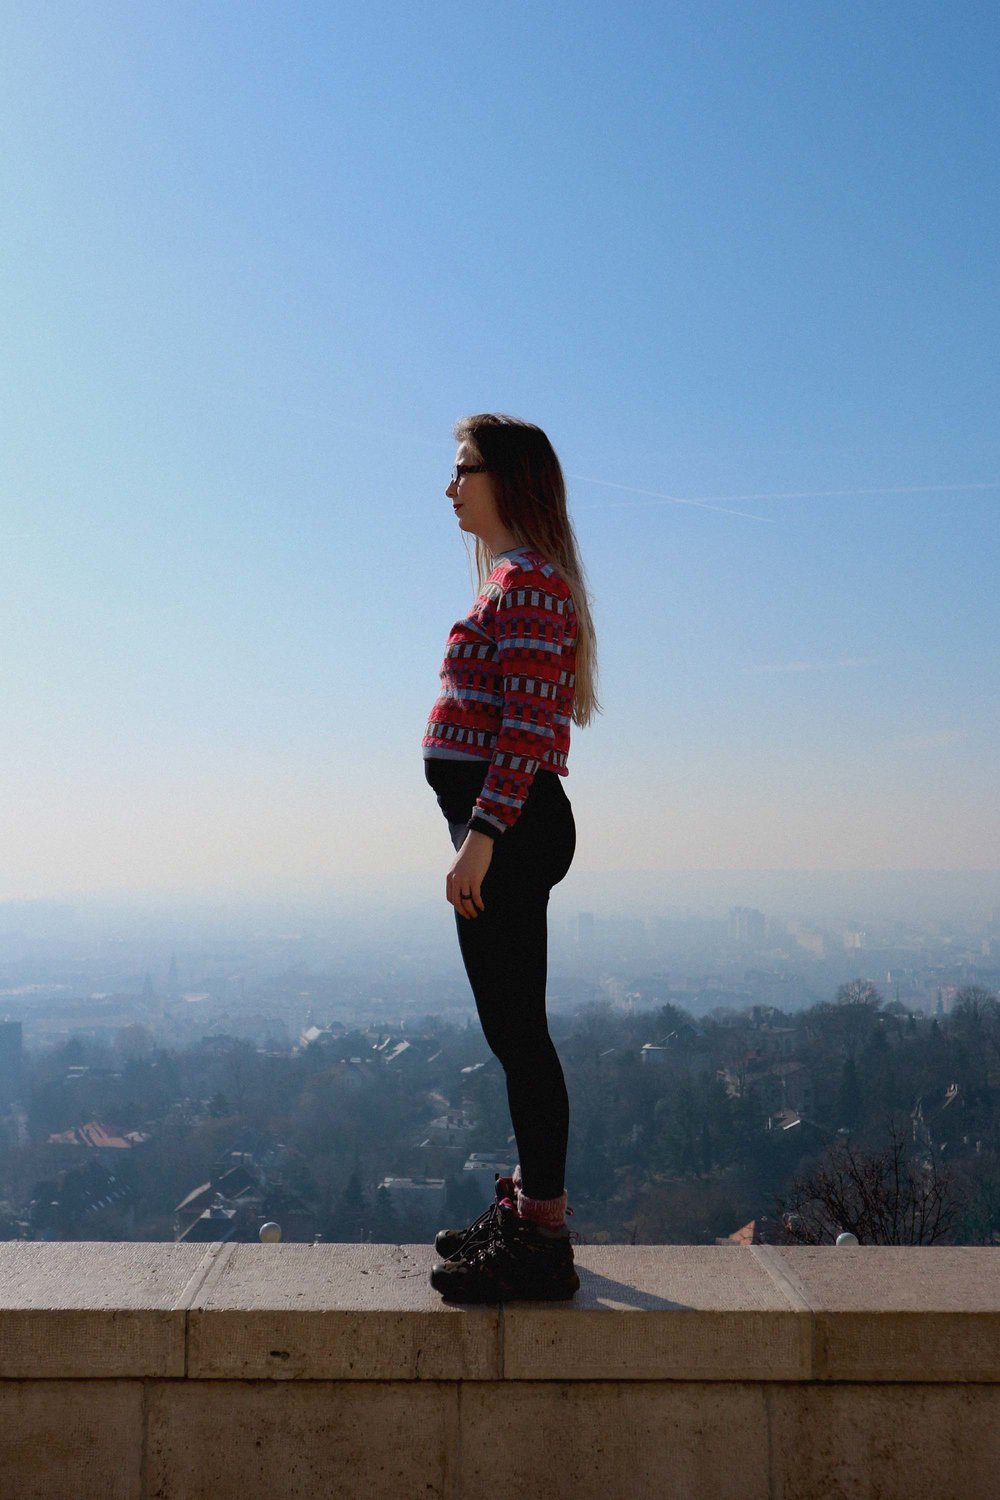 Me and my bump at the top of the Citadel viewing platform